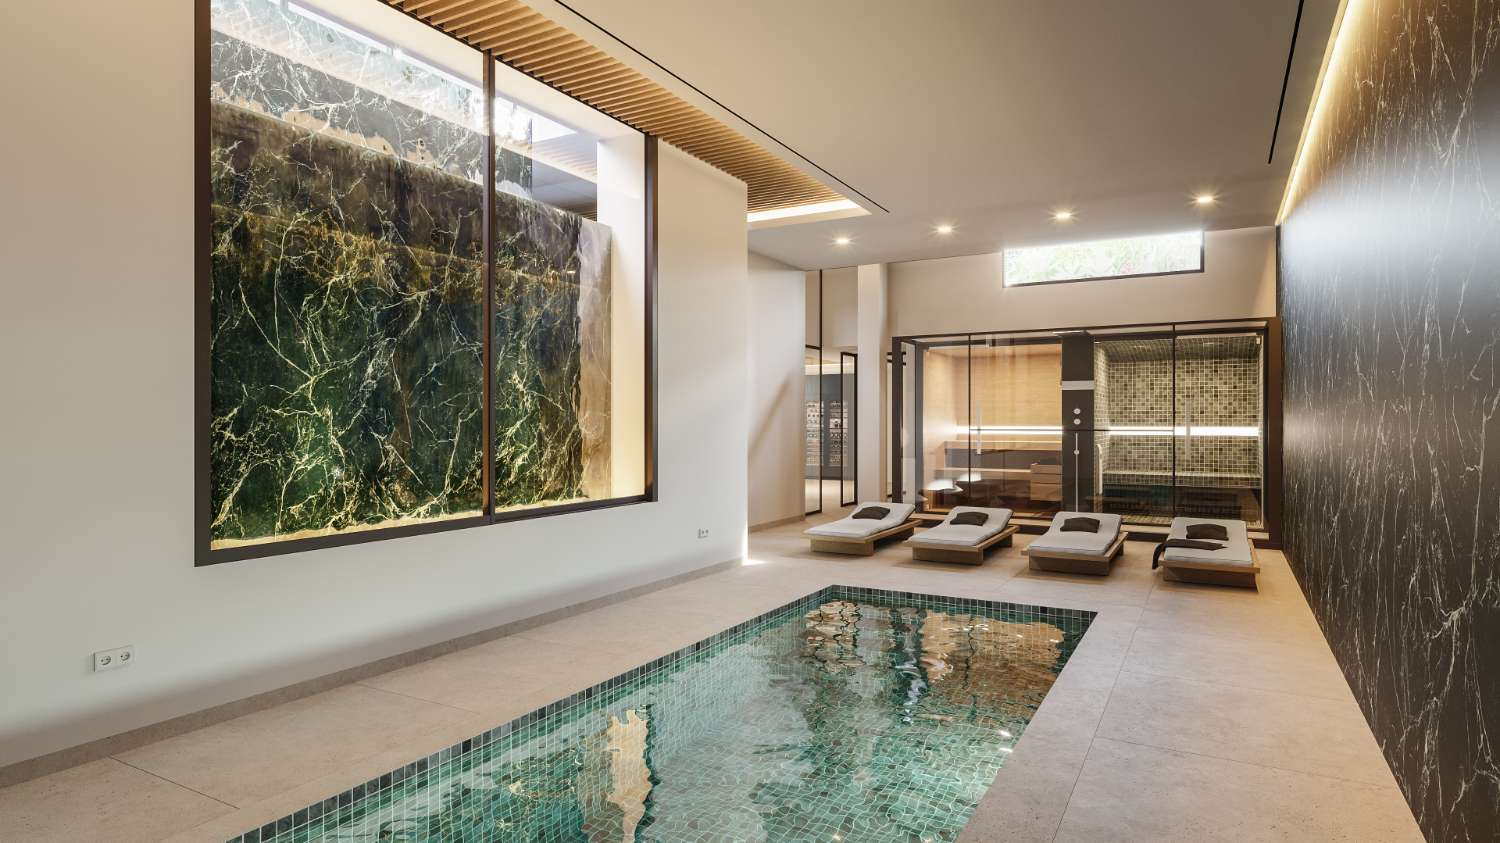 Only 8 villas. An exclusive and limited selection! Puerto Banús!